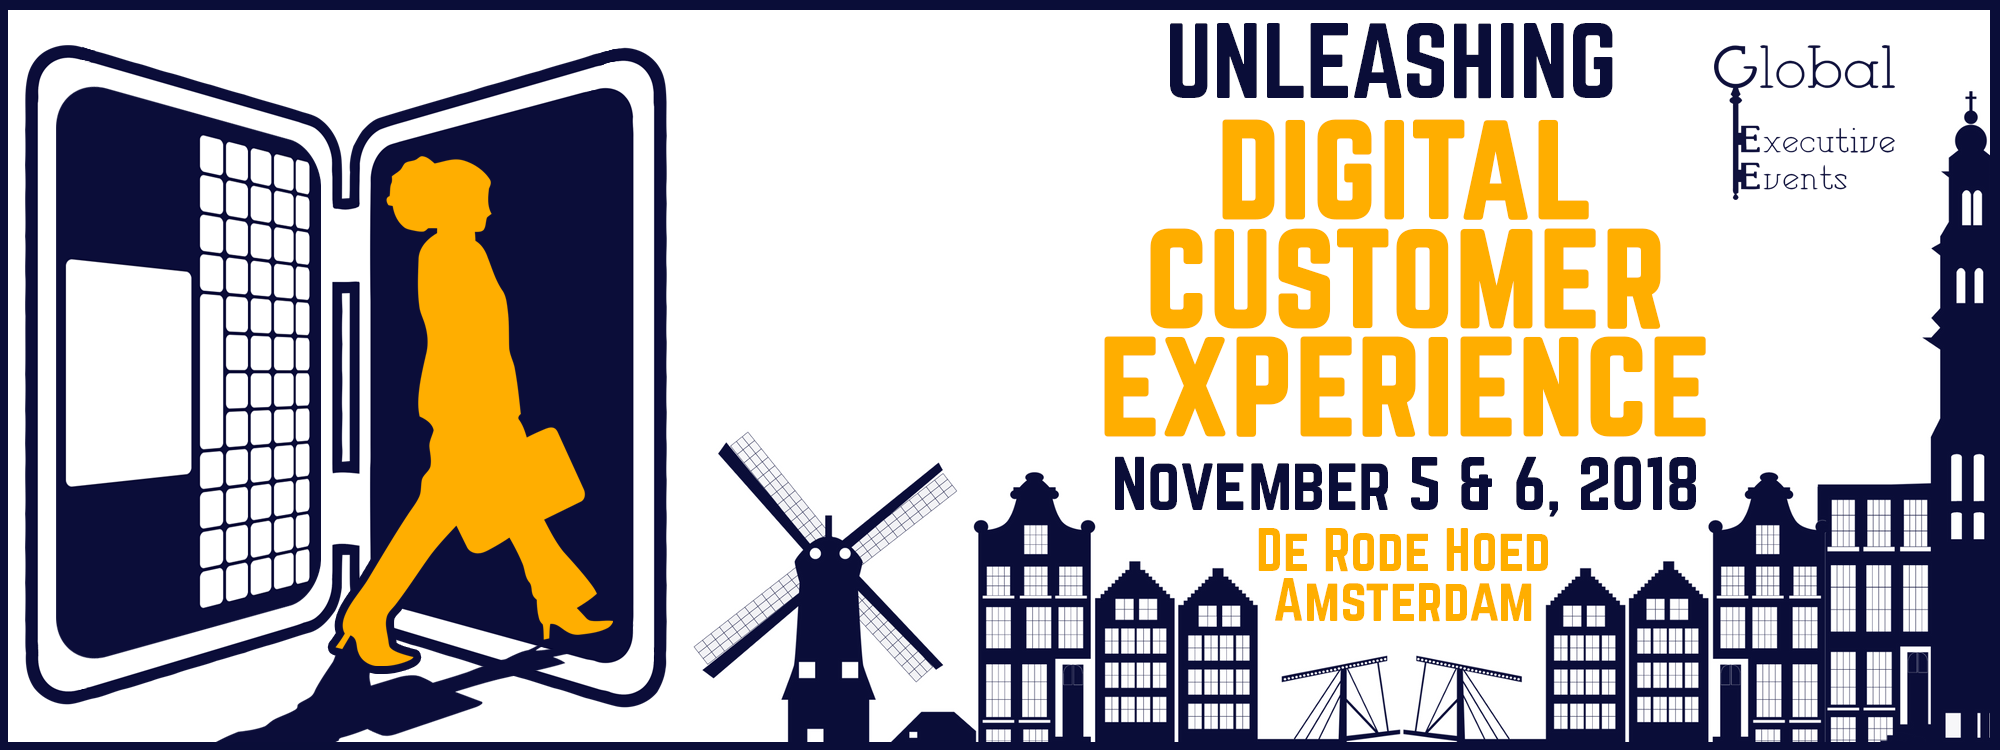 Unleashing Digital Customer Experience, November 2018